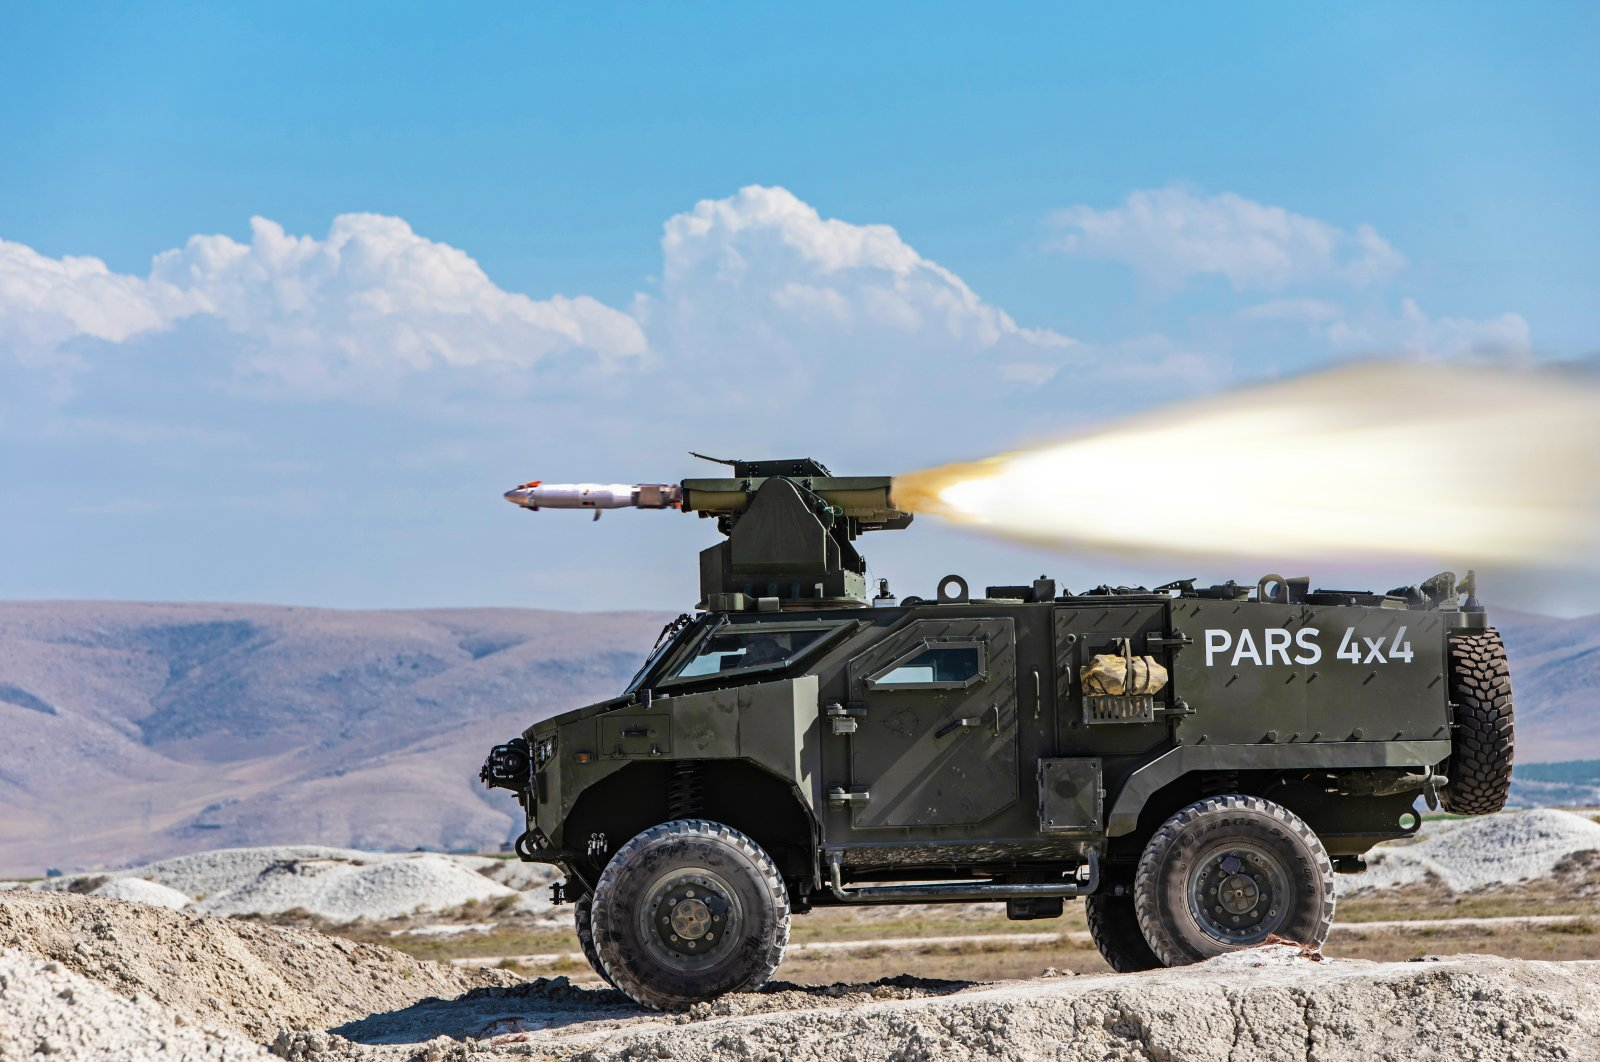 Pars 4x4 vehicle seen in this photo provided on Aug. 21, 2021. (Courtesy of FNSS)